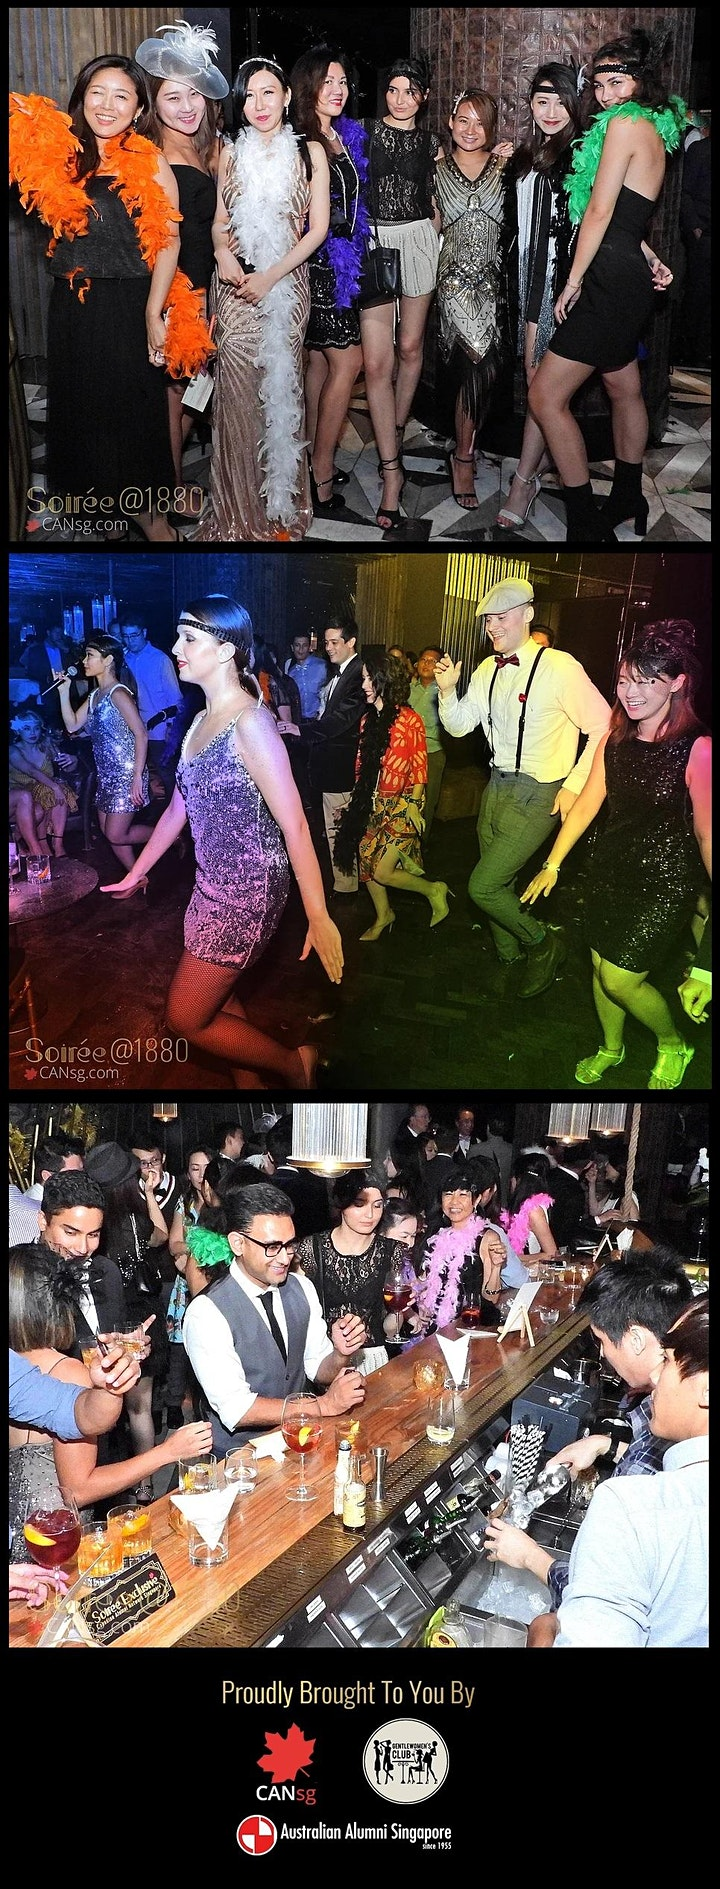 Exclusive Soirée2 Christmas Party @MBS Club55 image